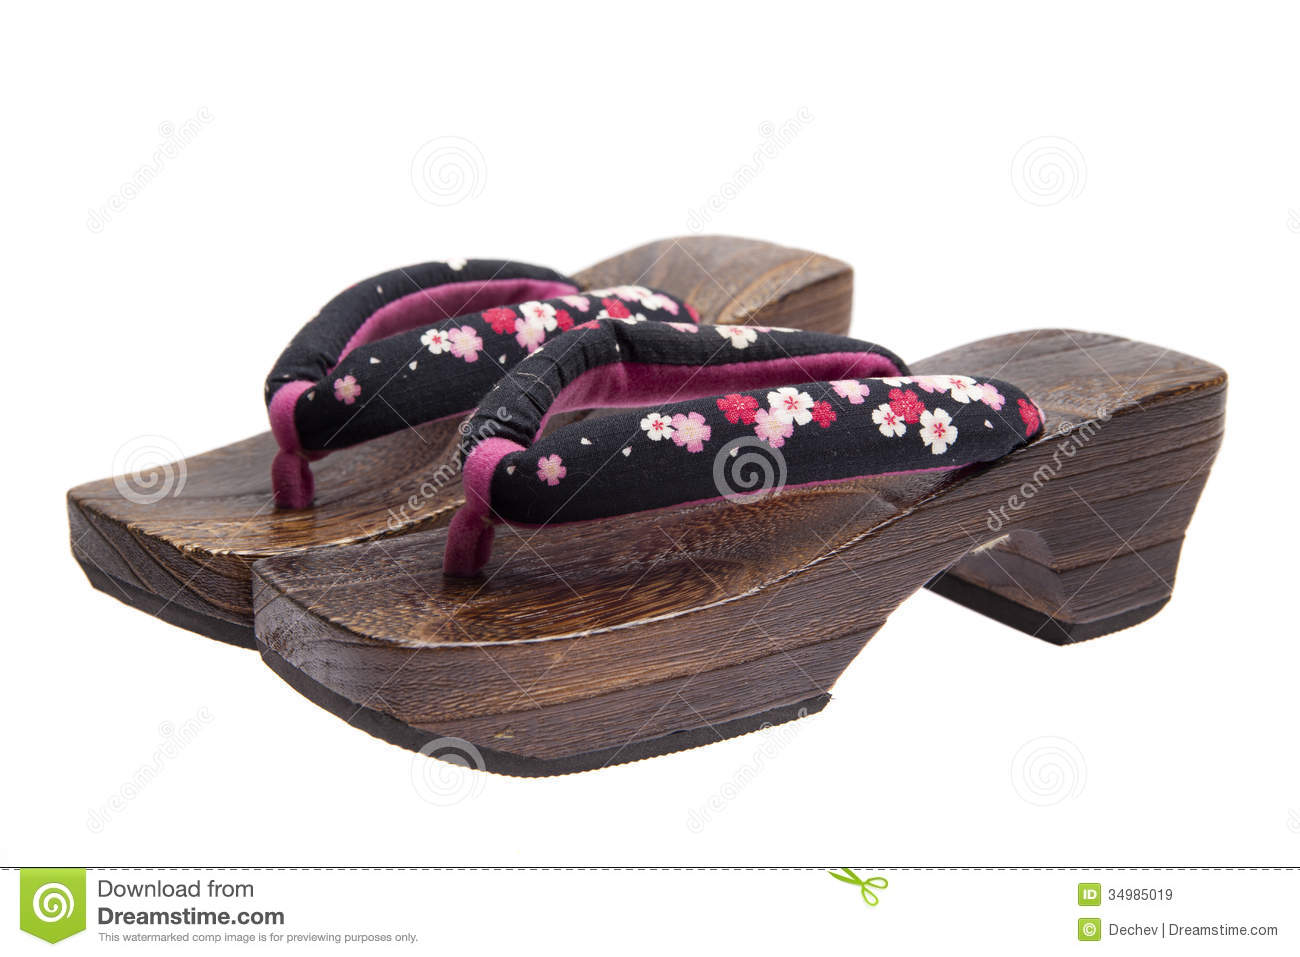 Geta, Japanese ornamental zori shoes, worn with a yukata or a kimono.